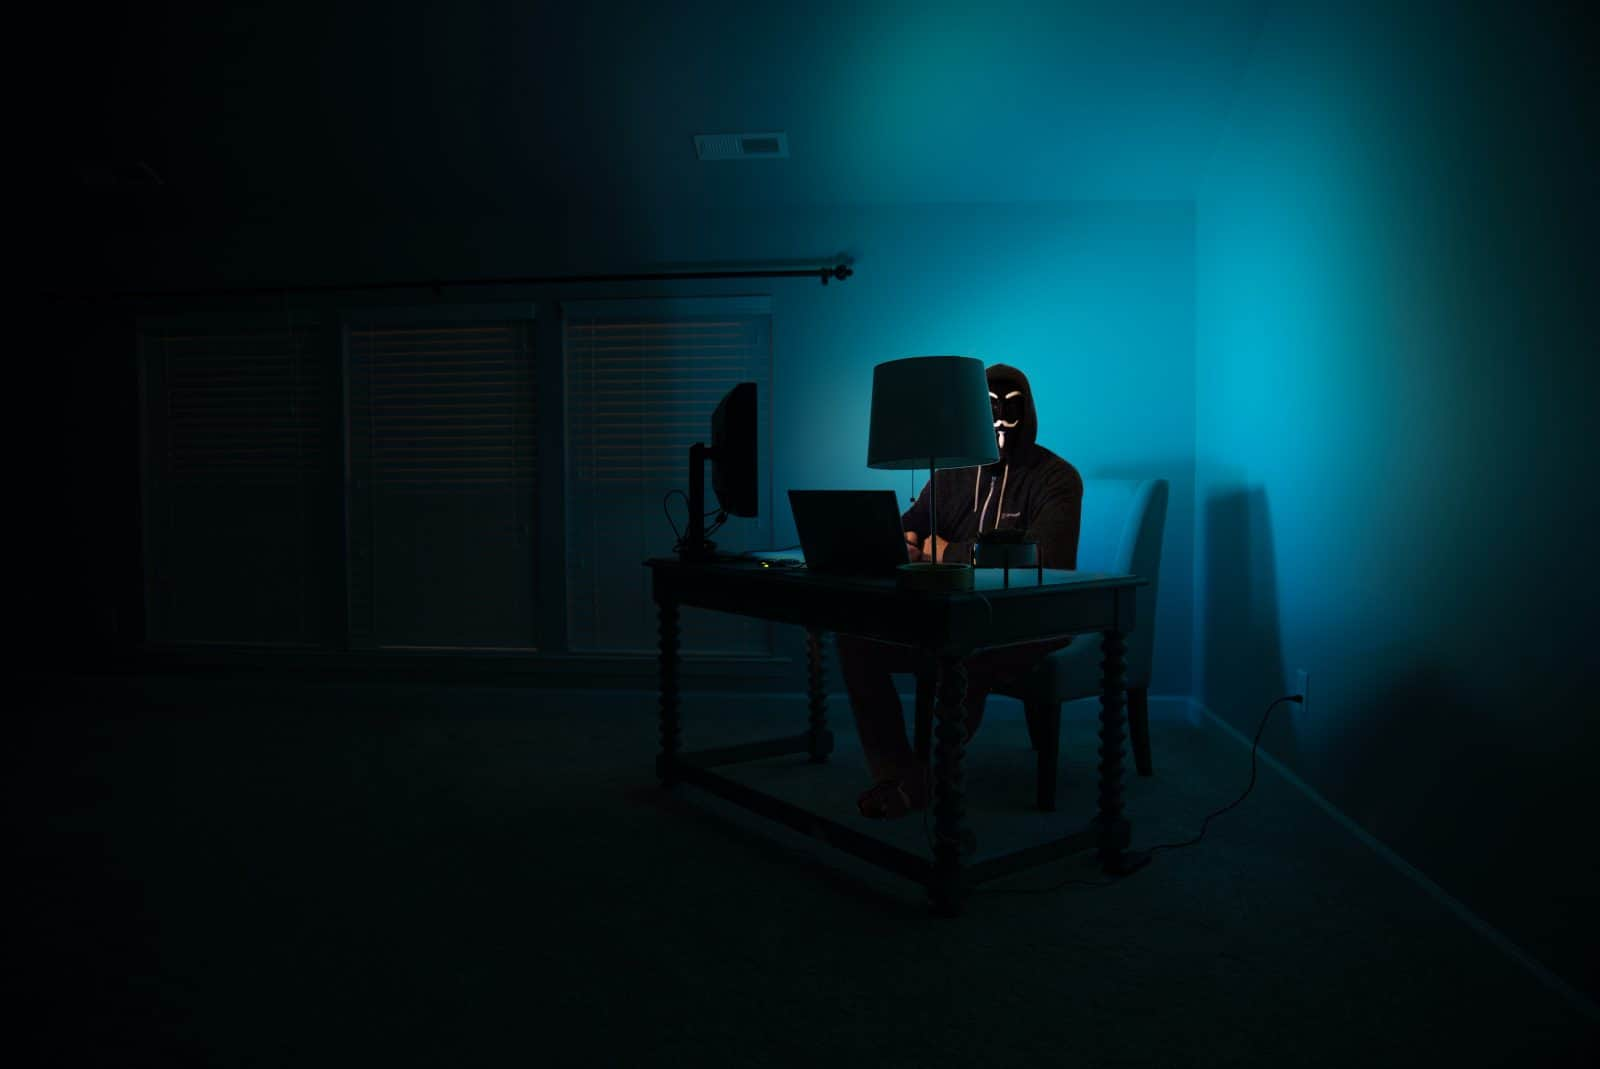 cyber security policy hacker 2